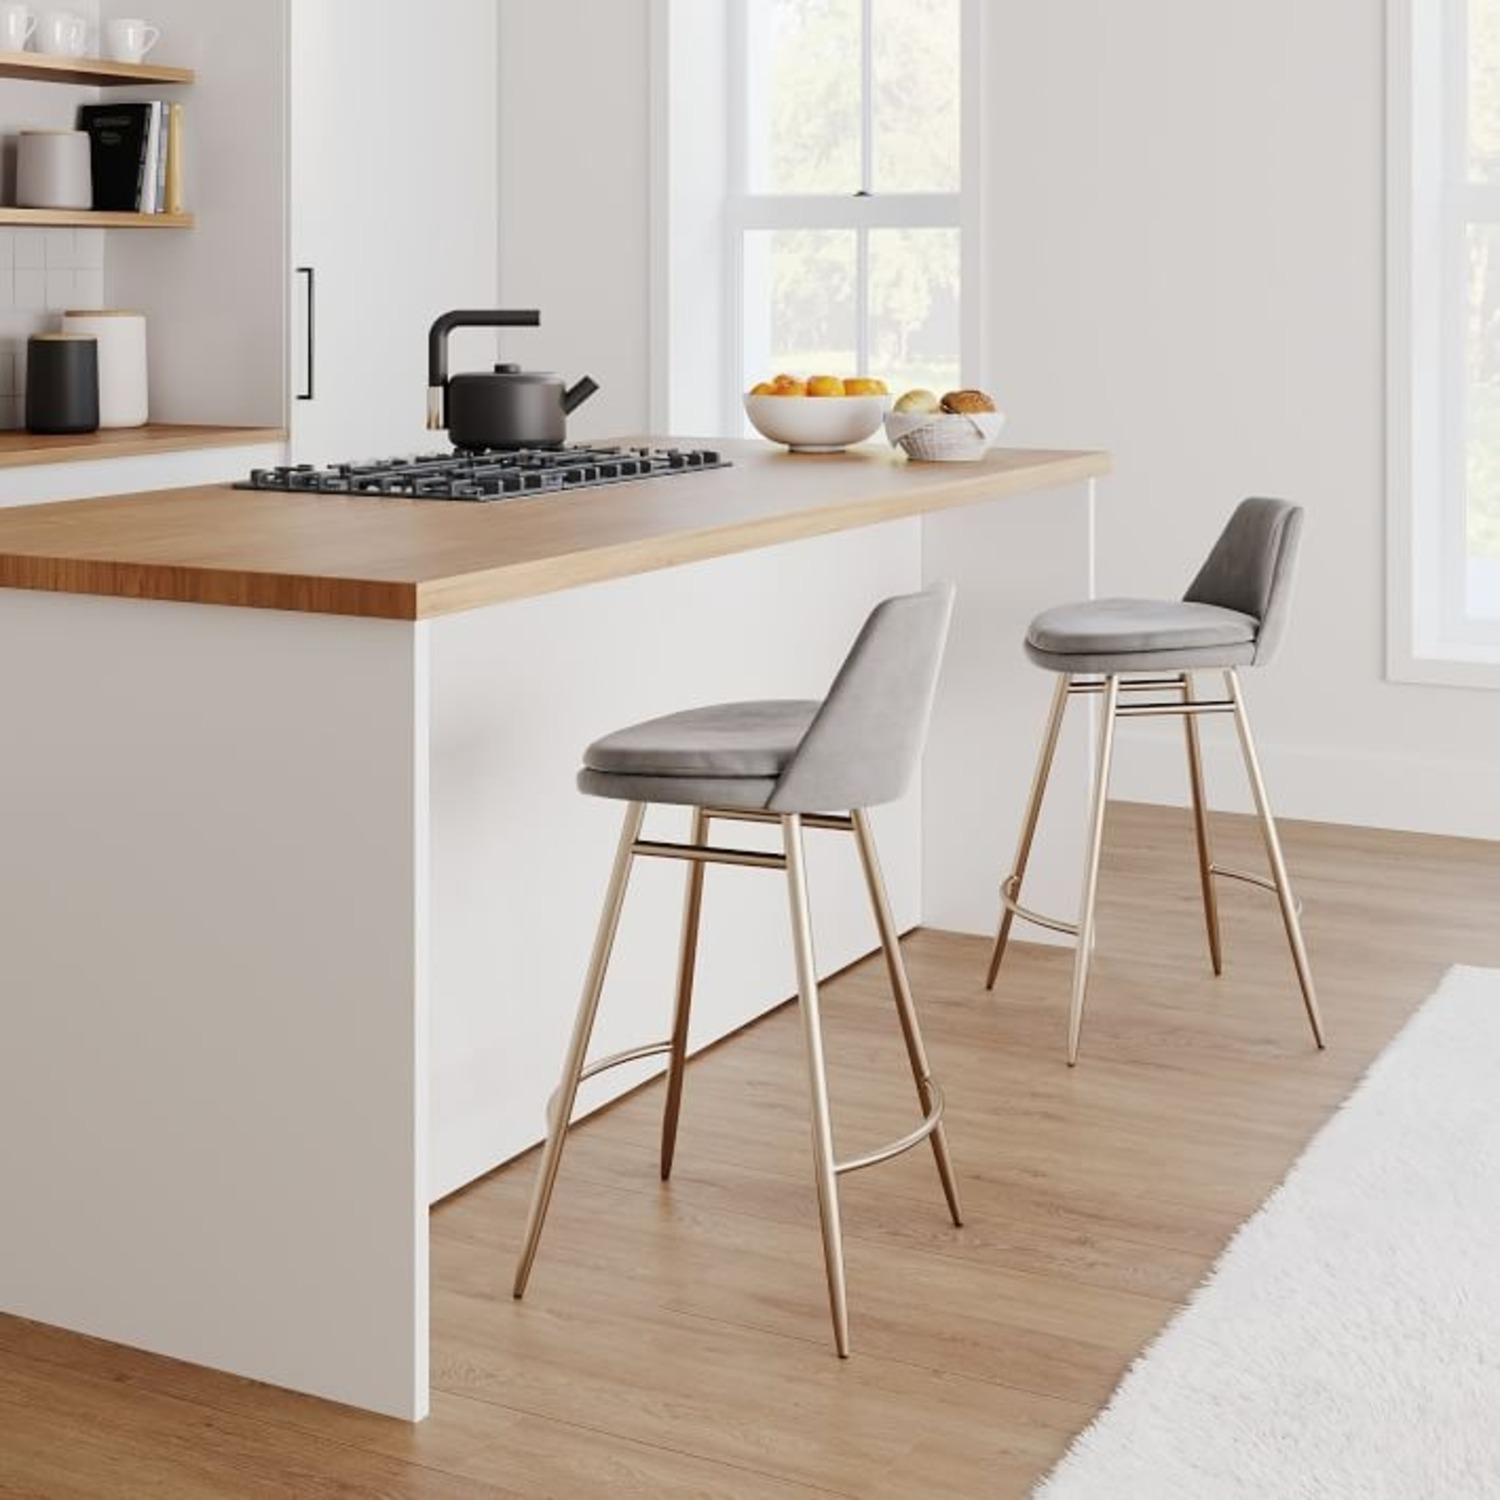 West Elm Finley Counter Stool - image-1